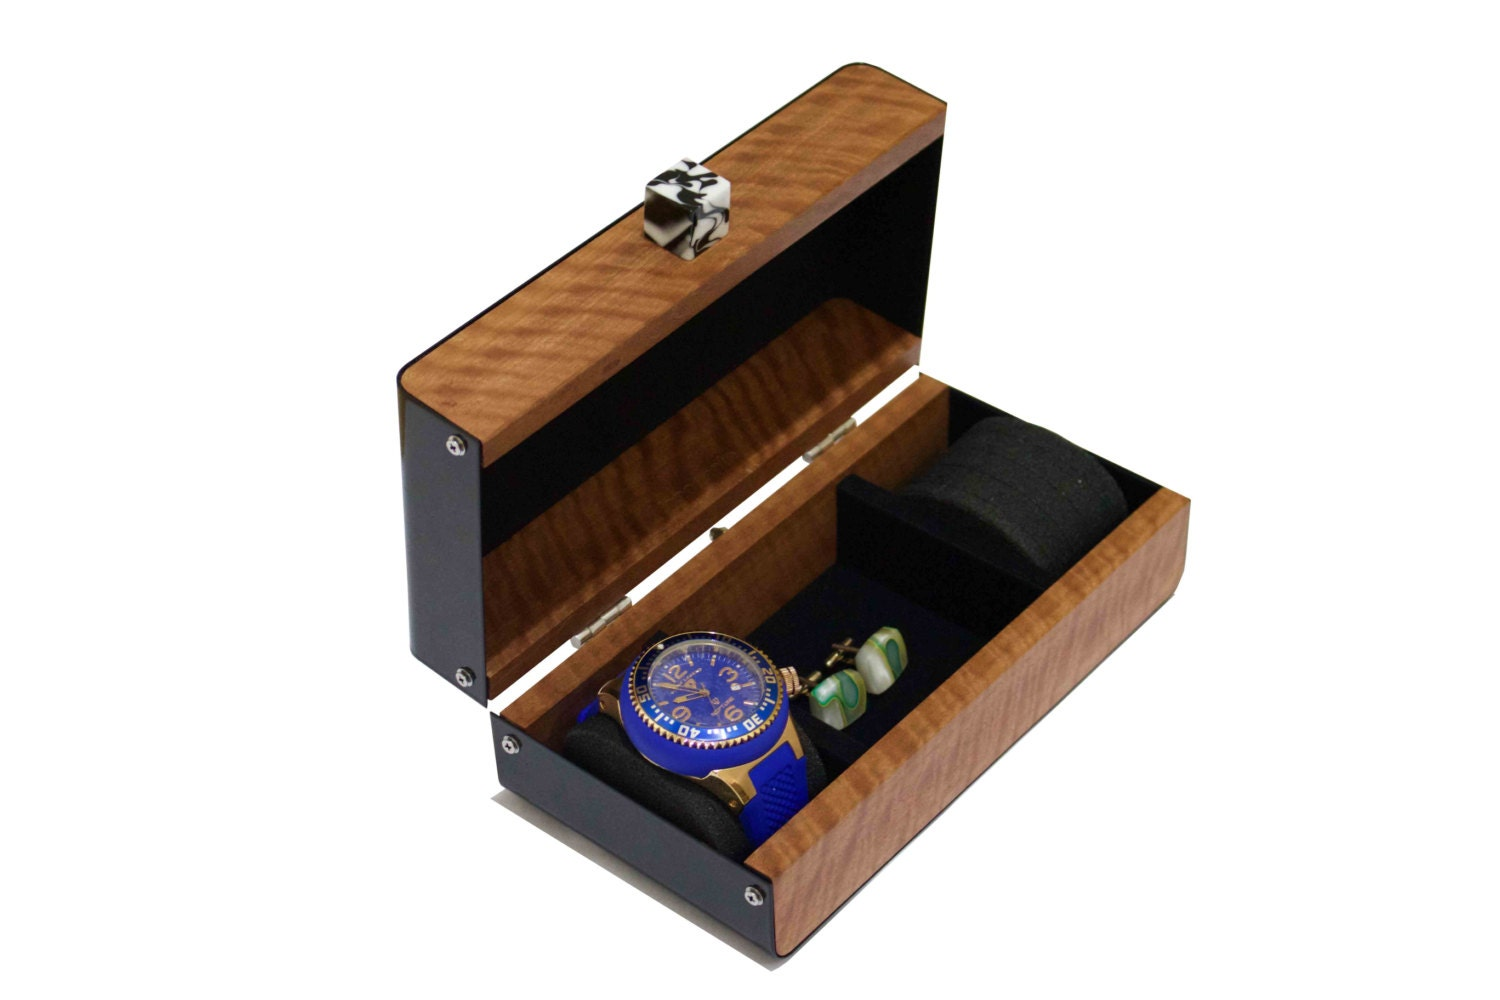 Anniversary gift mens watches box 2 watch pillows cufflinks for Men s jewelry box for watches and cufflinks